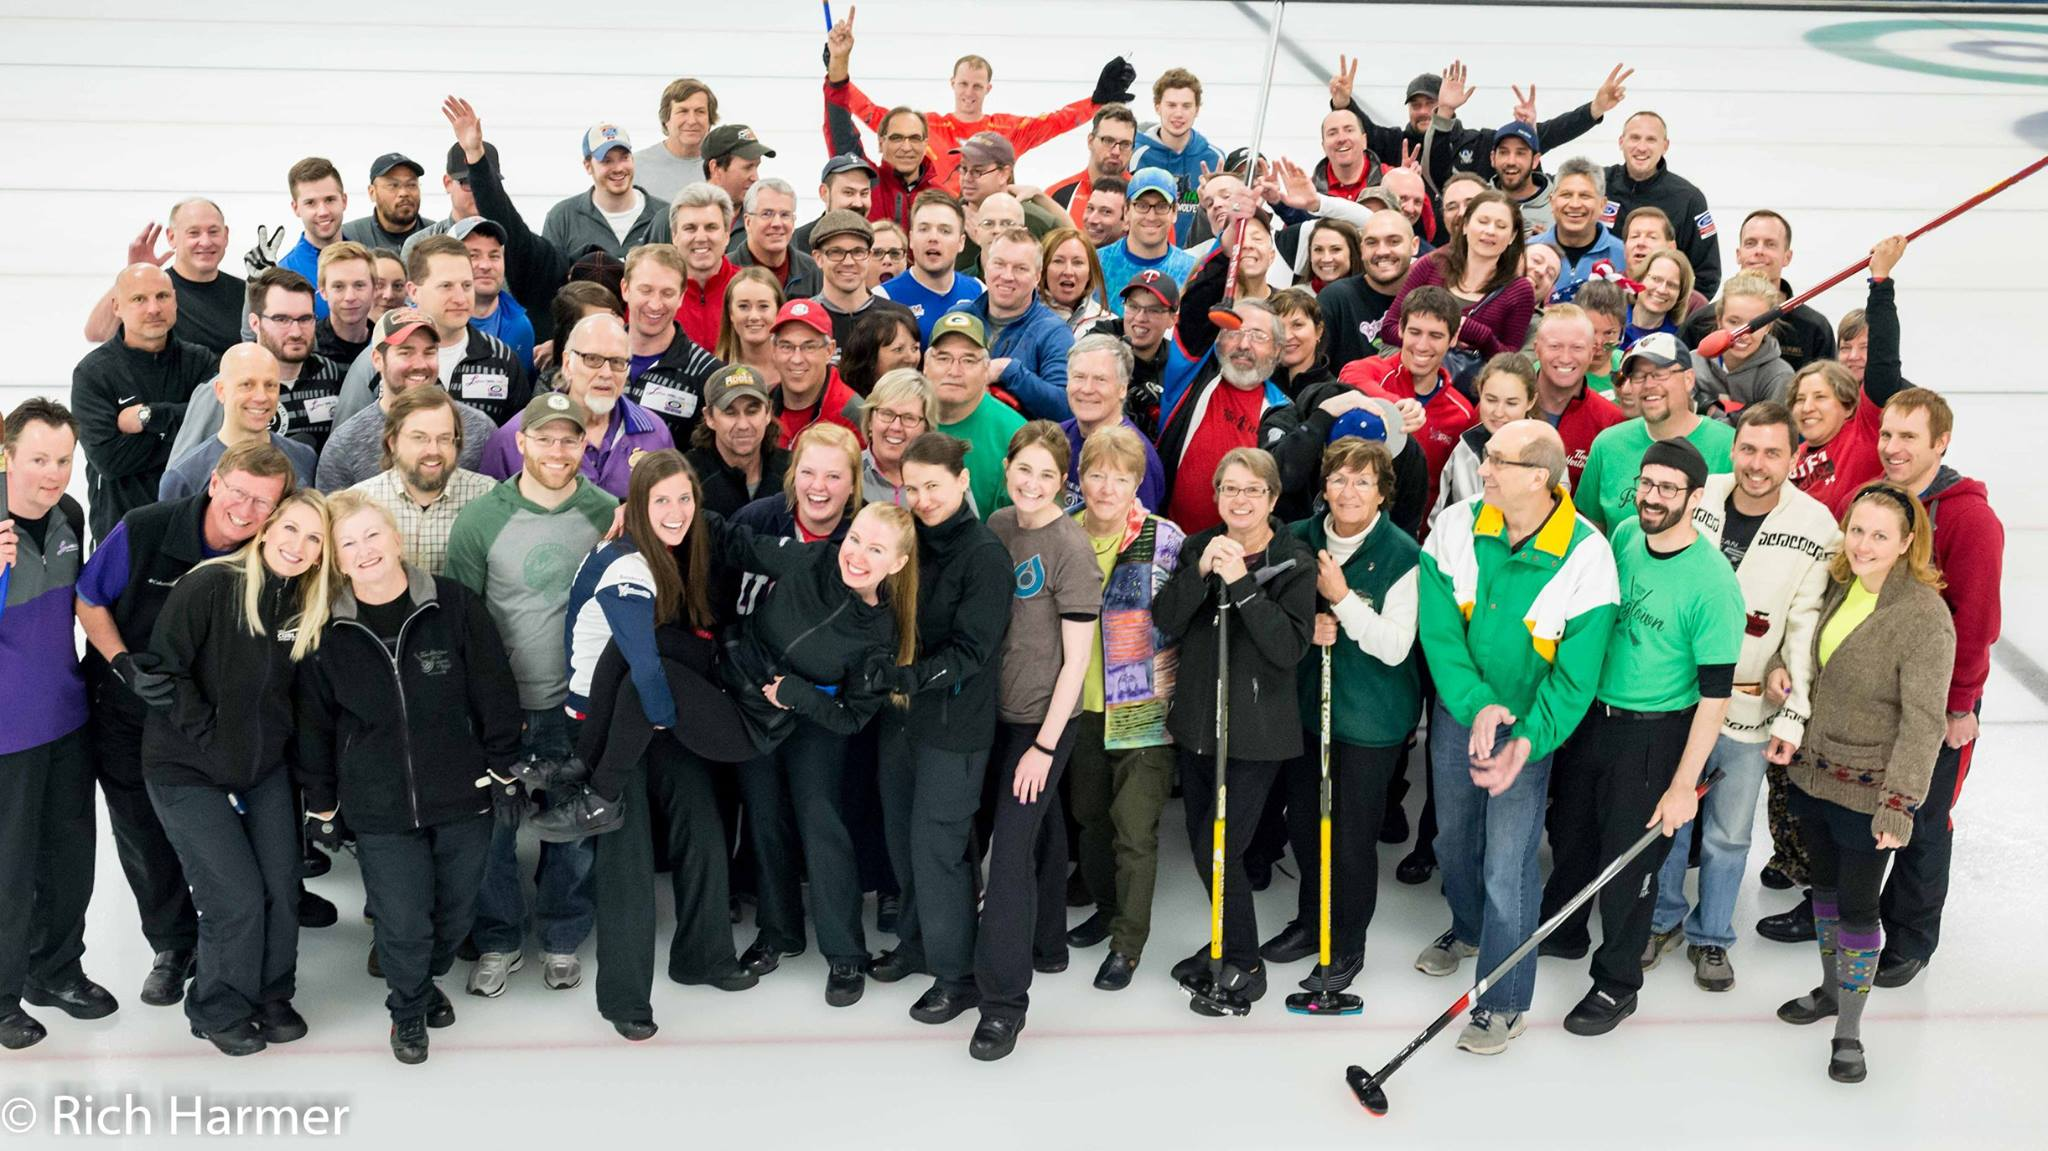 LUPUS SPIEL USA HOPING TO RAISE $100,000